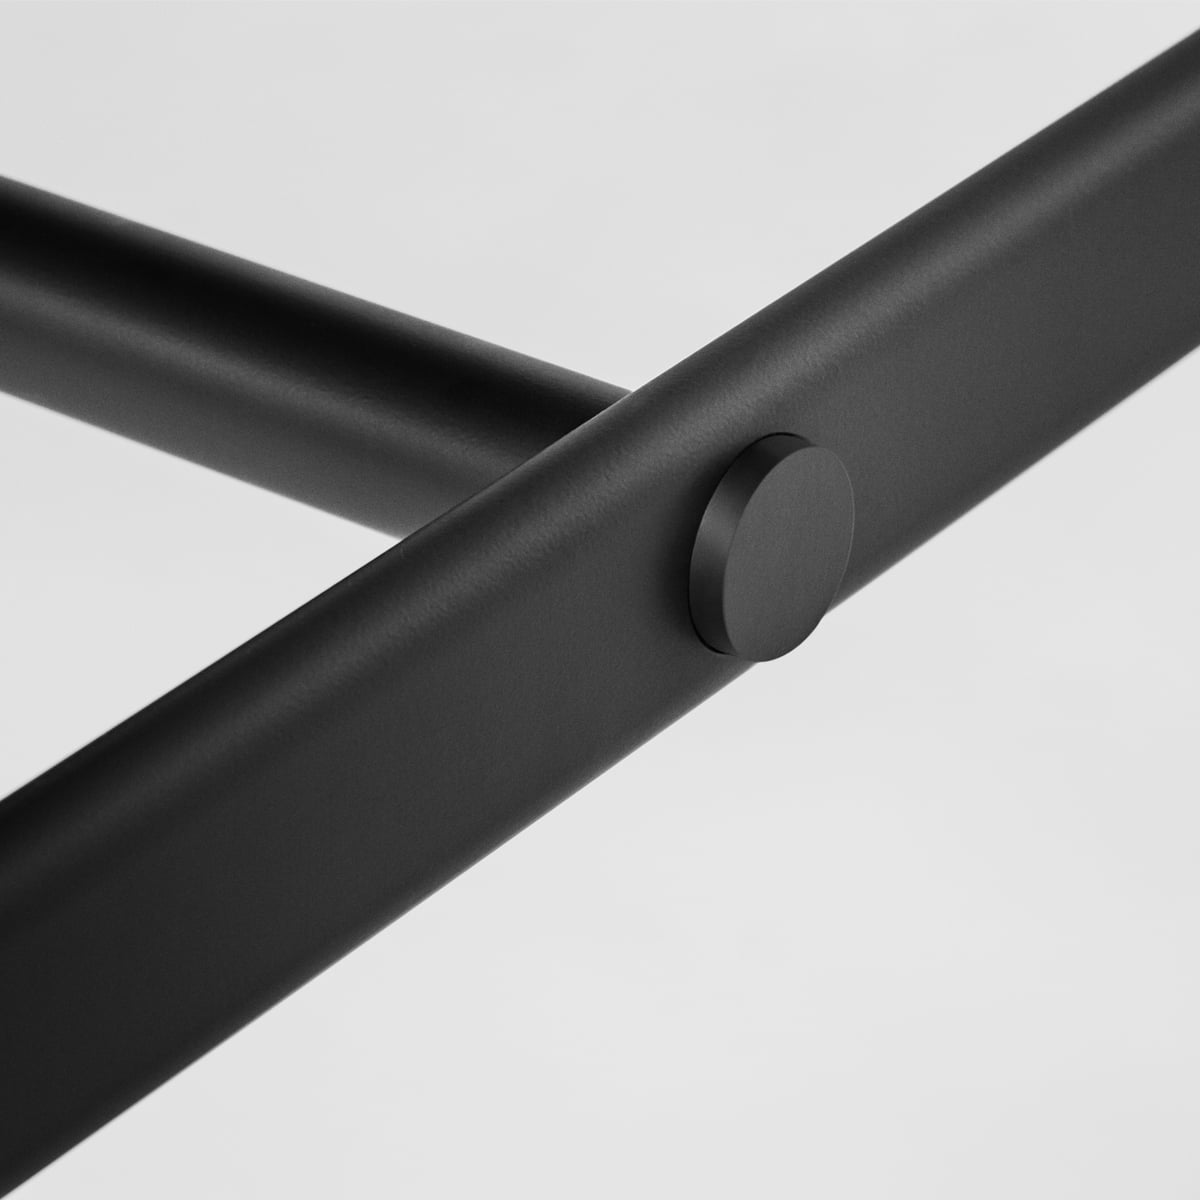 Mies dining table by Million Connox Shop : Million Mies Dining Table 200x90 cm schwarz Detail from www.connox.co.uk size 1200 x 1200 jpeg 45kB